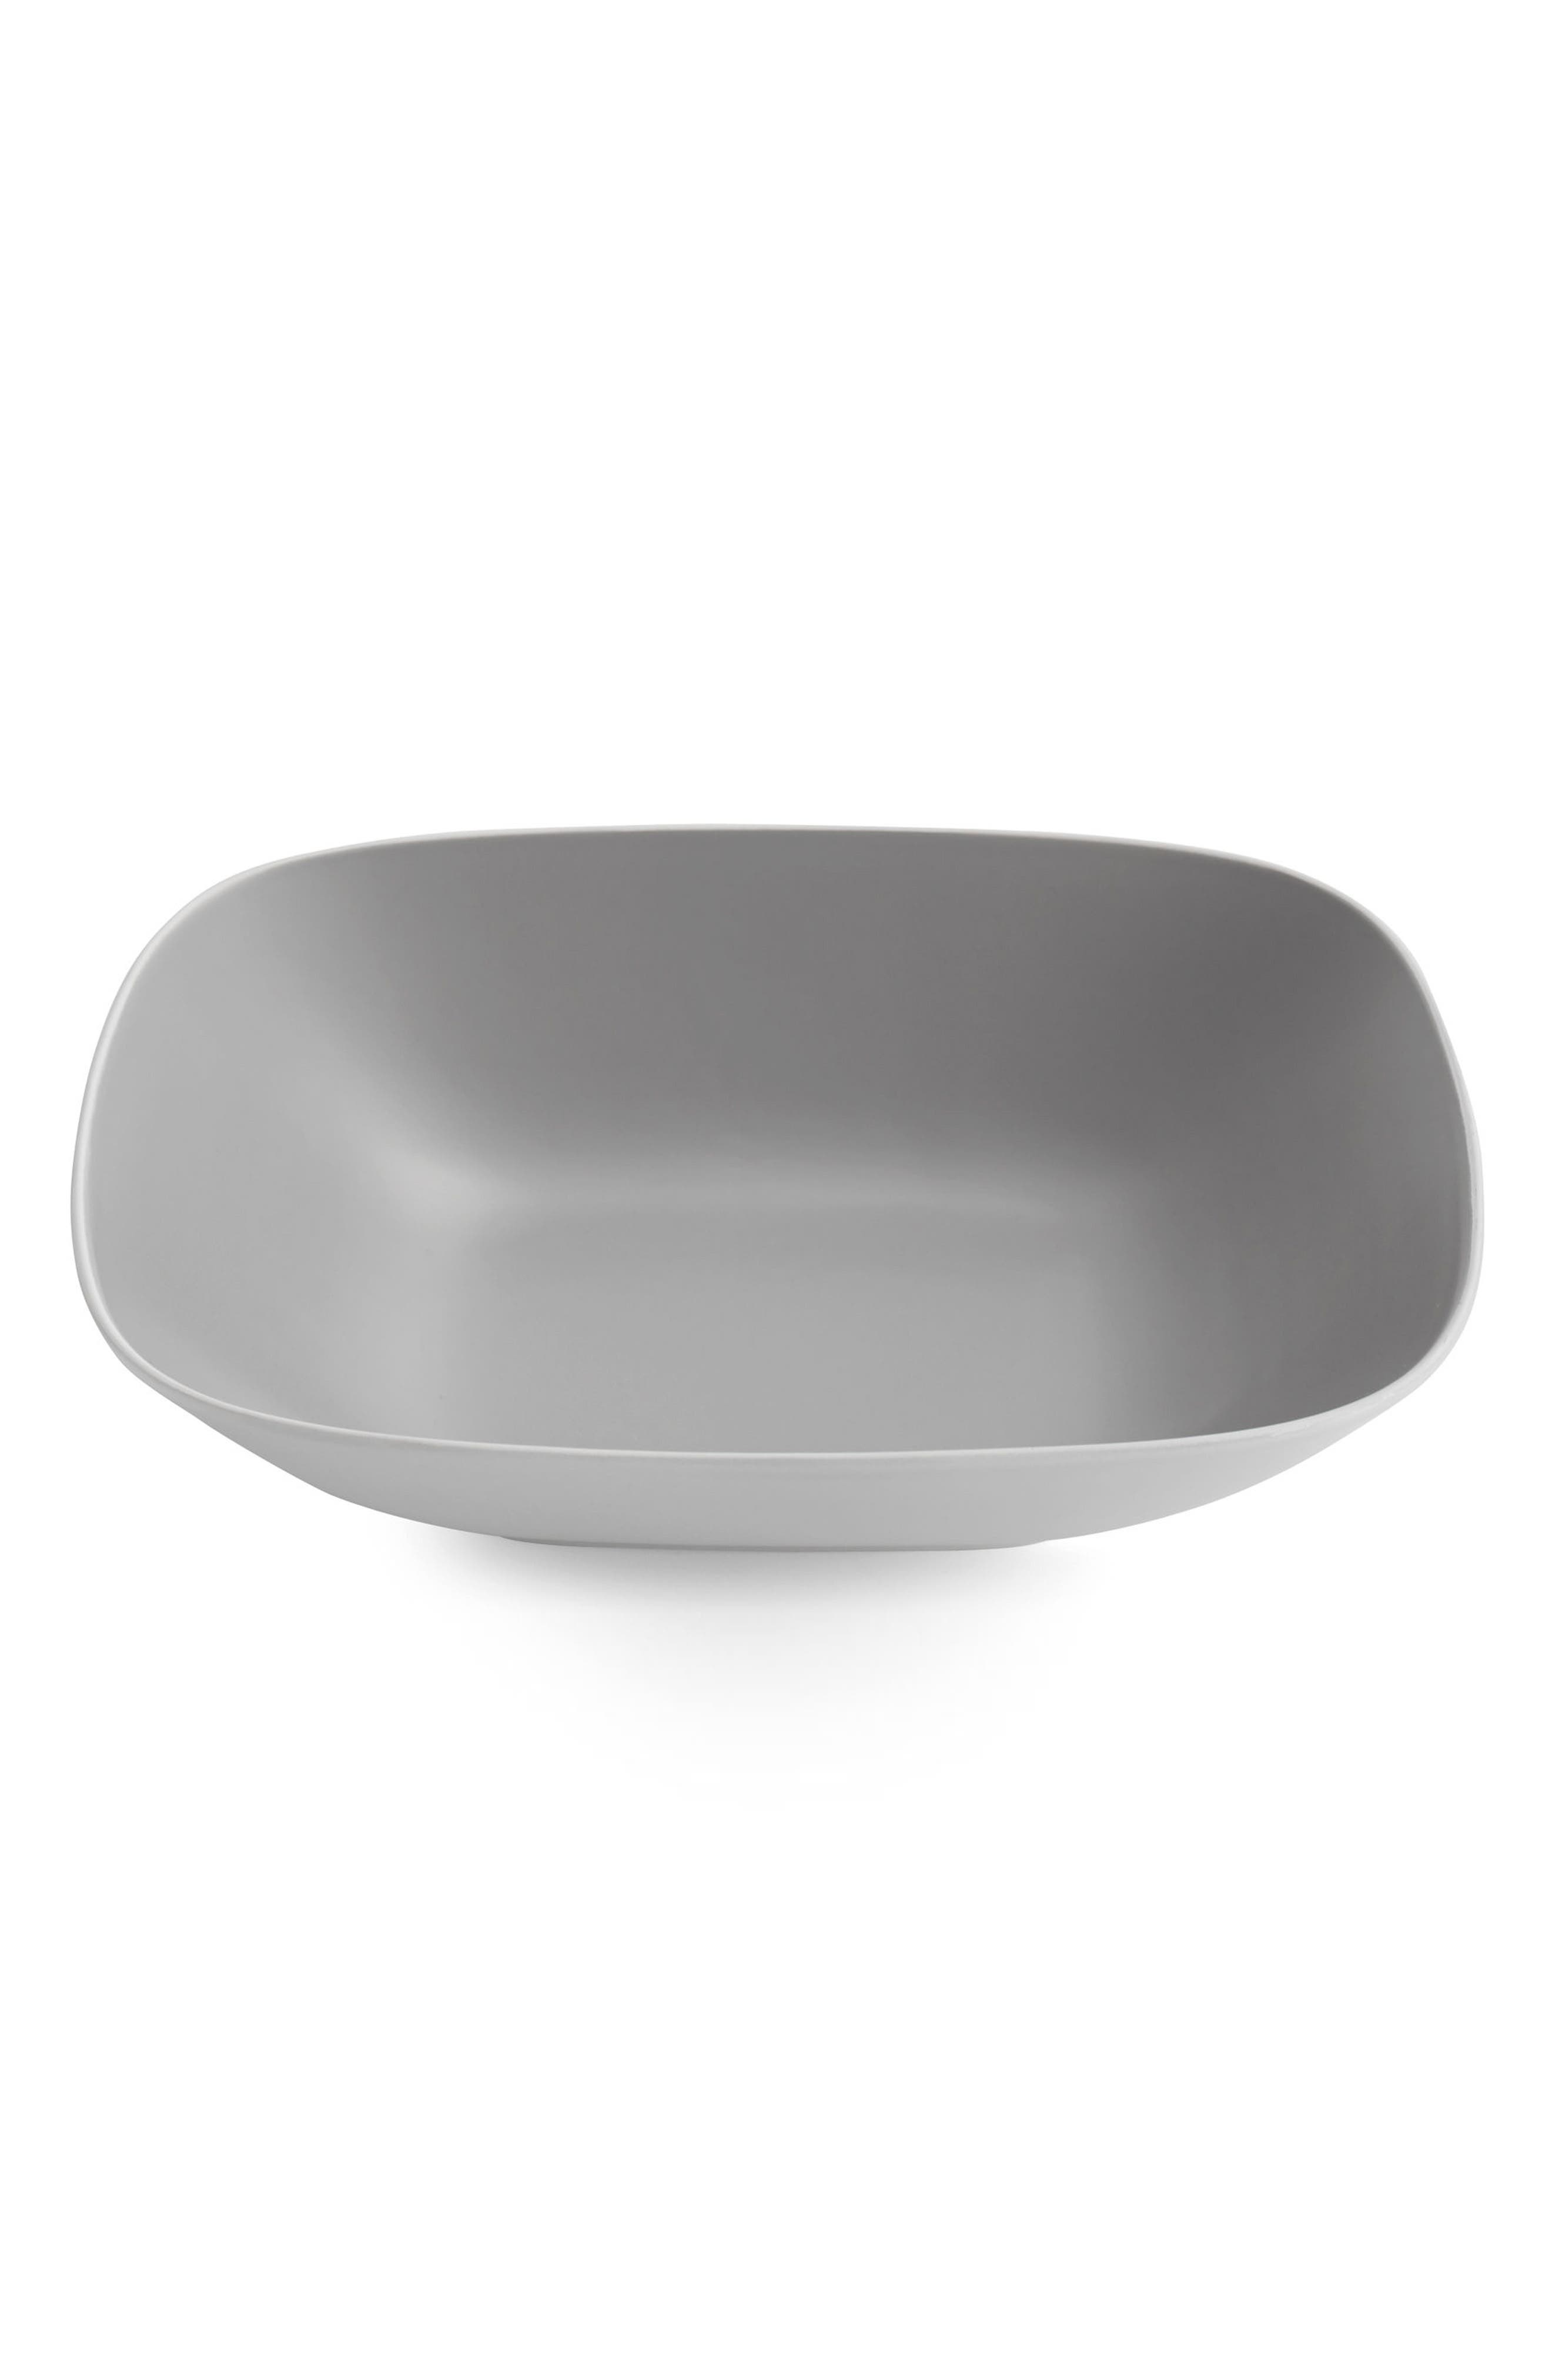 POP Square Serving Bowl,                         Main,                         color, 020